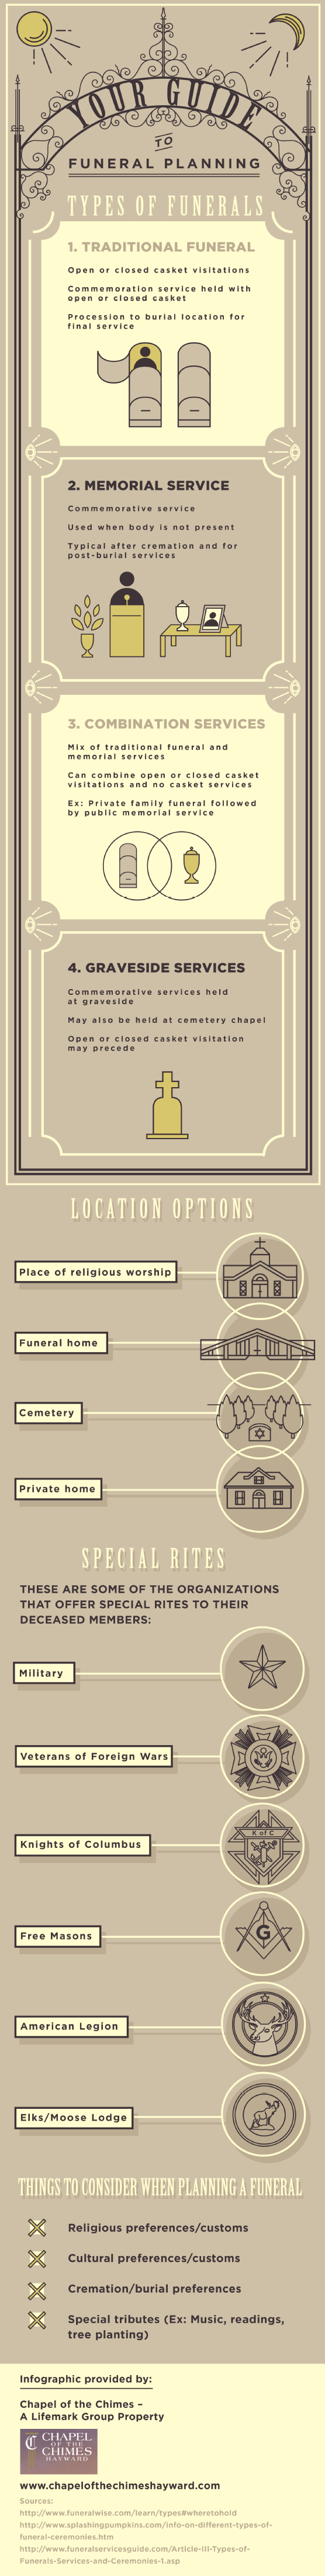 Guide to Funeral Planning Infographic